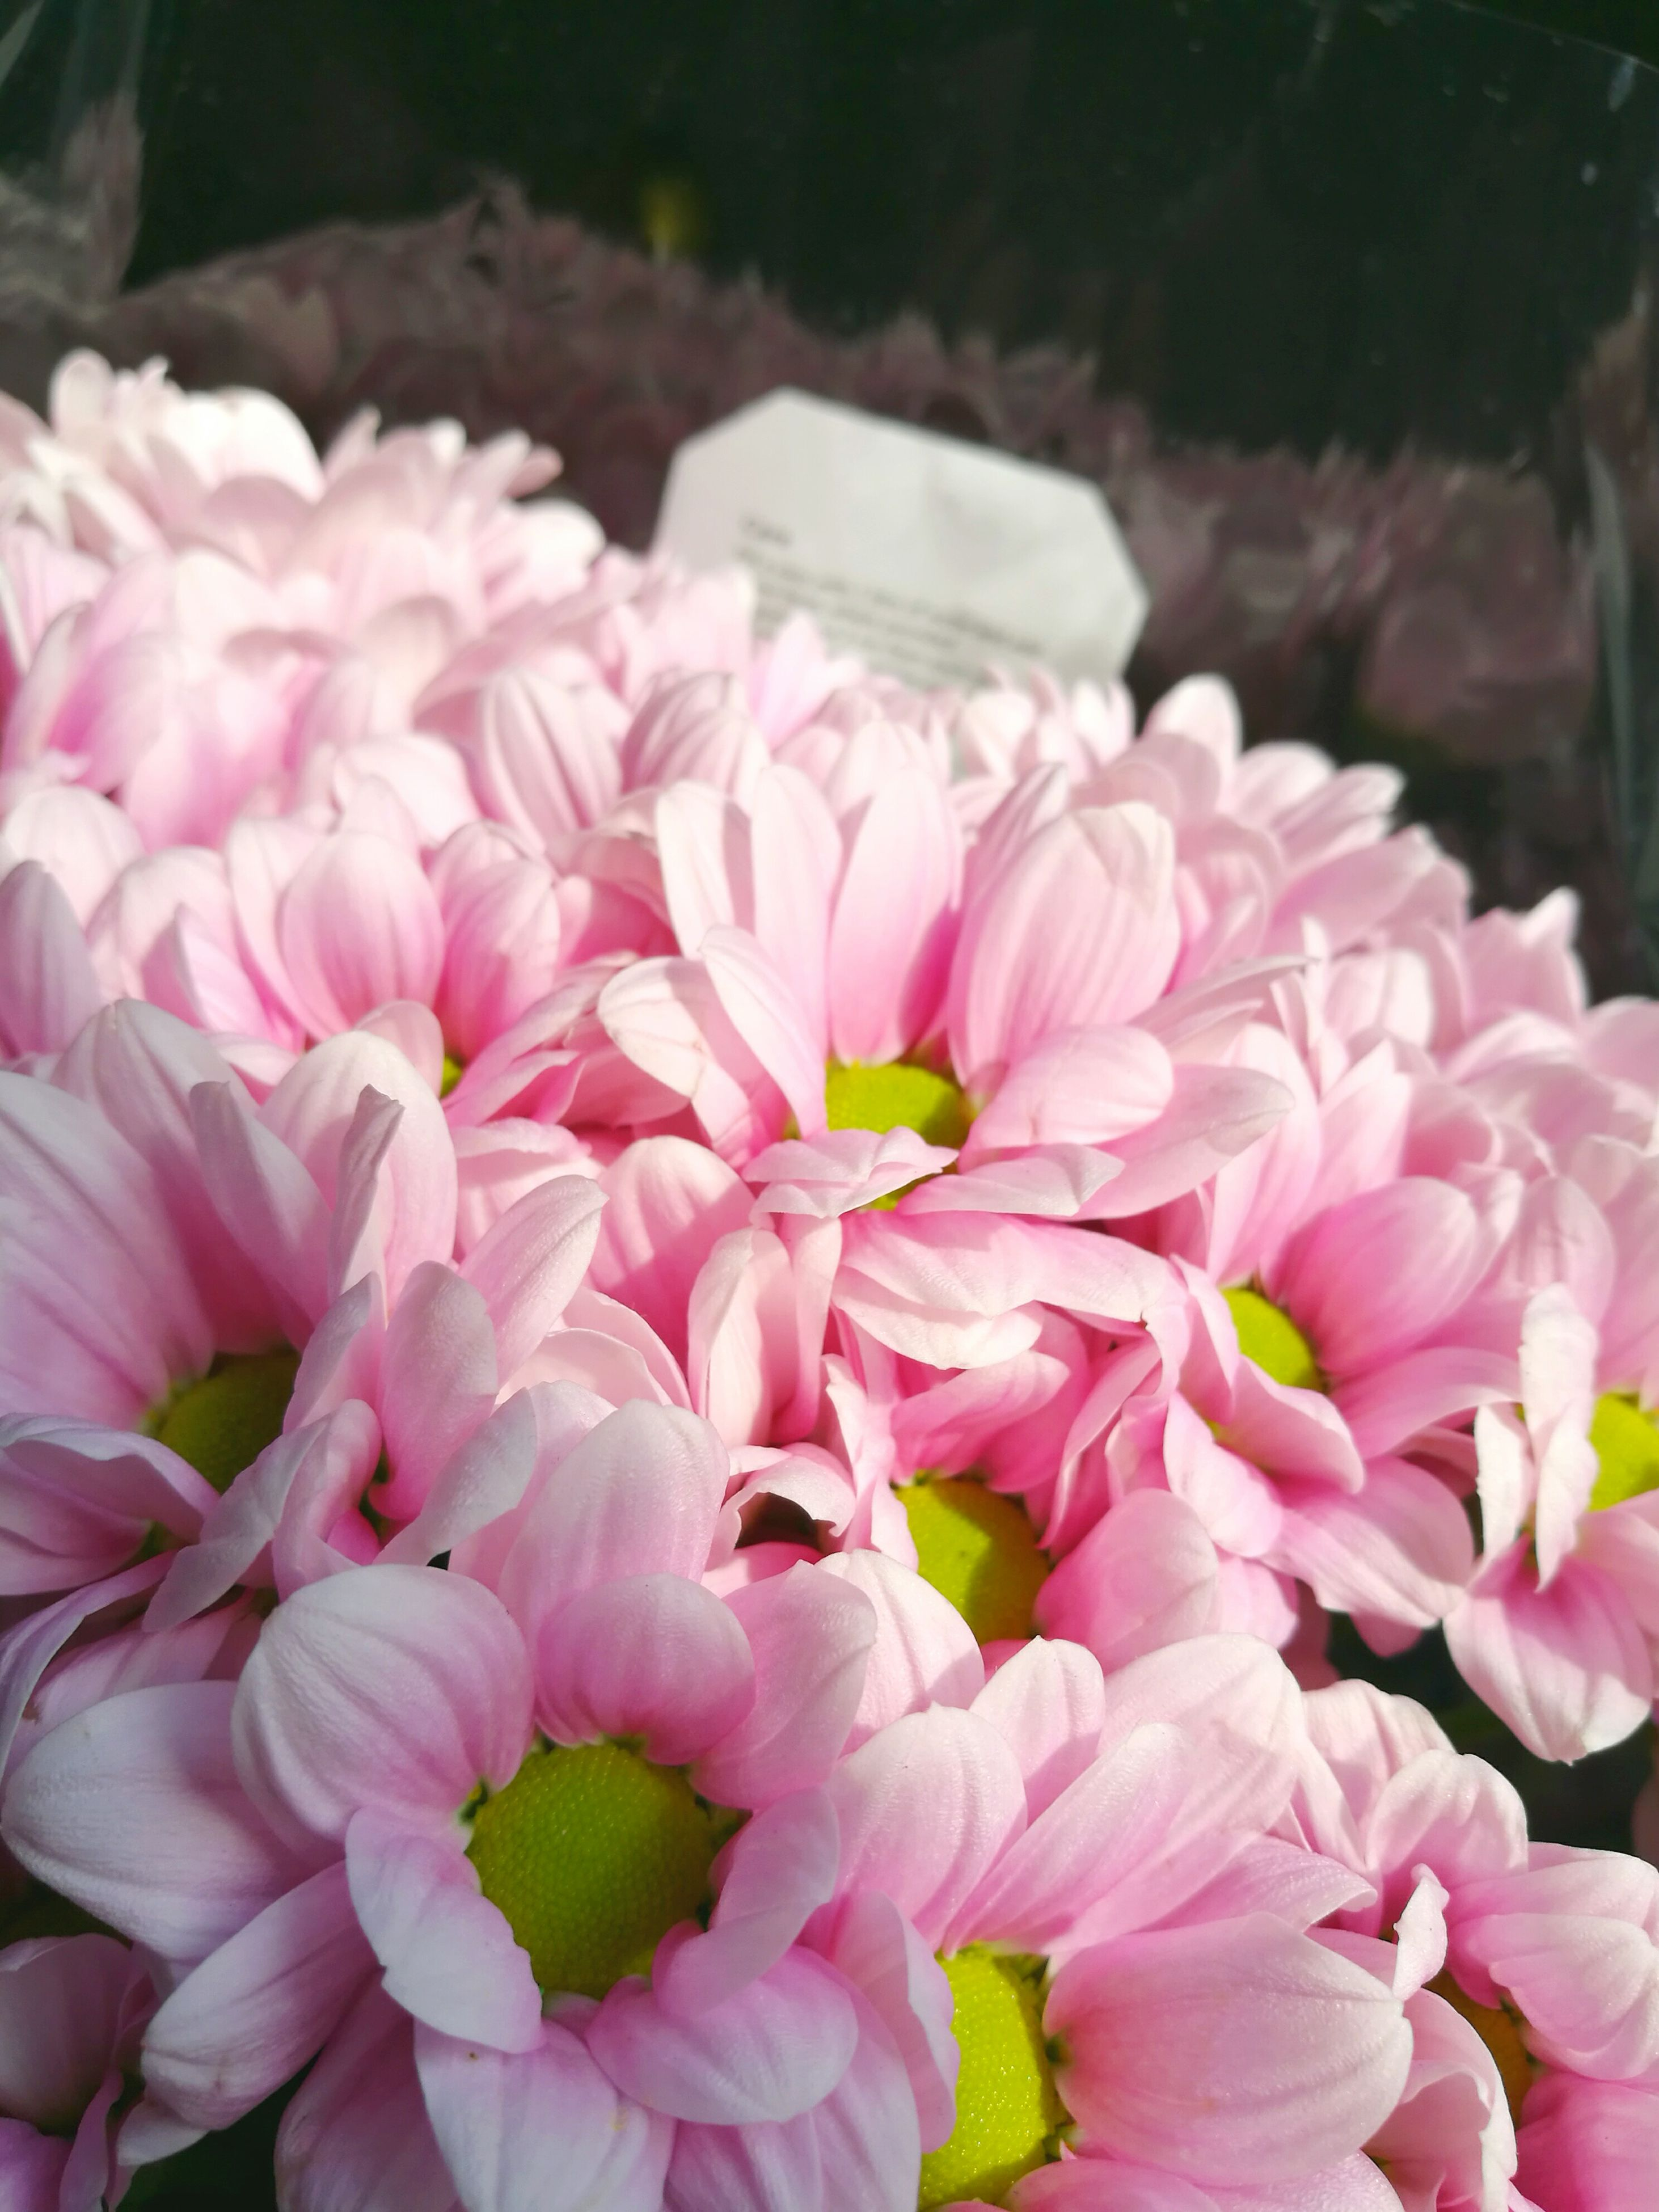 flower, freshness, petal, fragility, pink color, beauty in nature, close-up, flower head, nature, springtime, pink, growth, selective focus, bunch of flowers, abundance, in bloom, focus on foreground, day, softness, large group of objects, blossom, botany, bloom, multi colored, no people, vibrant color